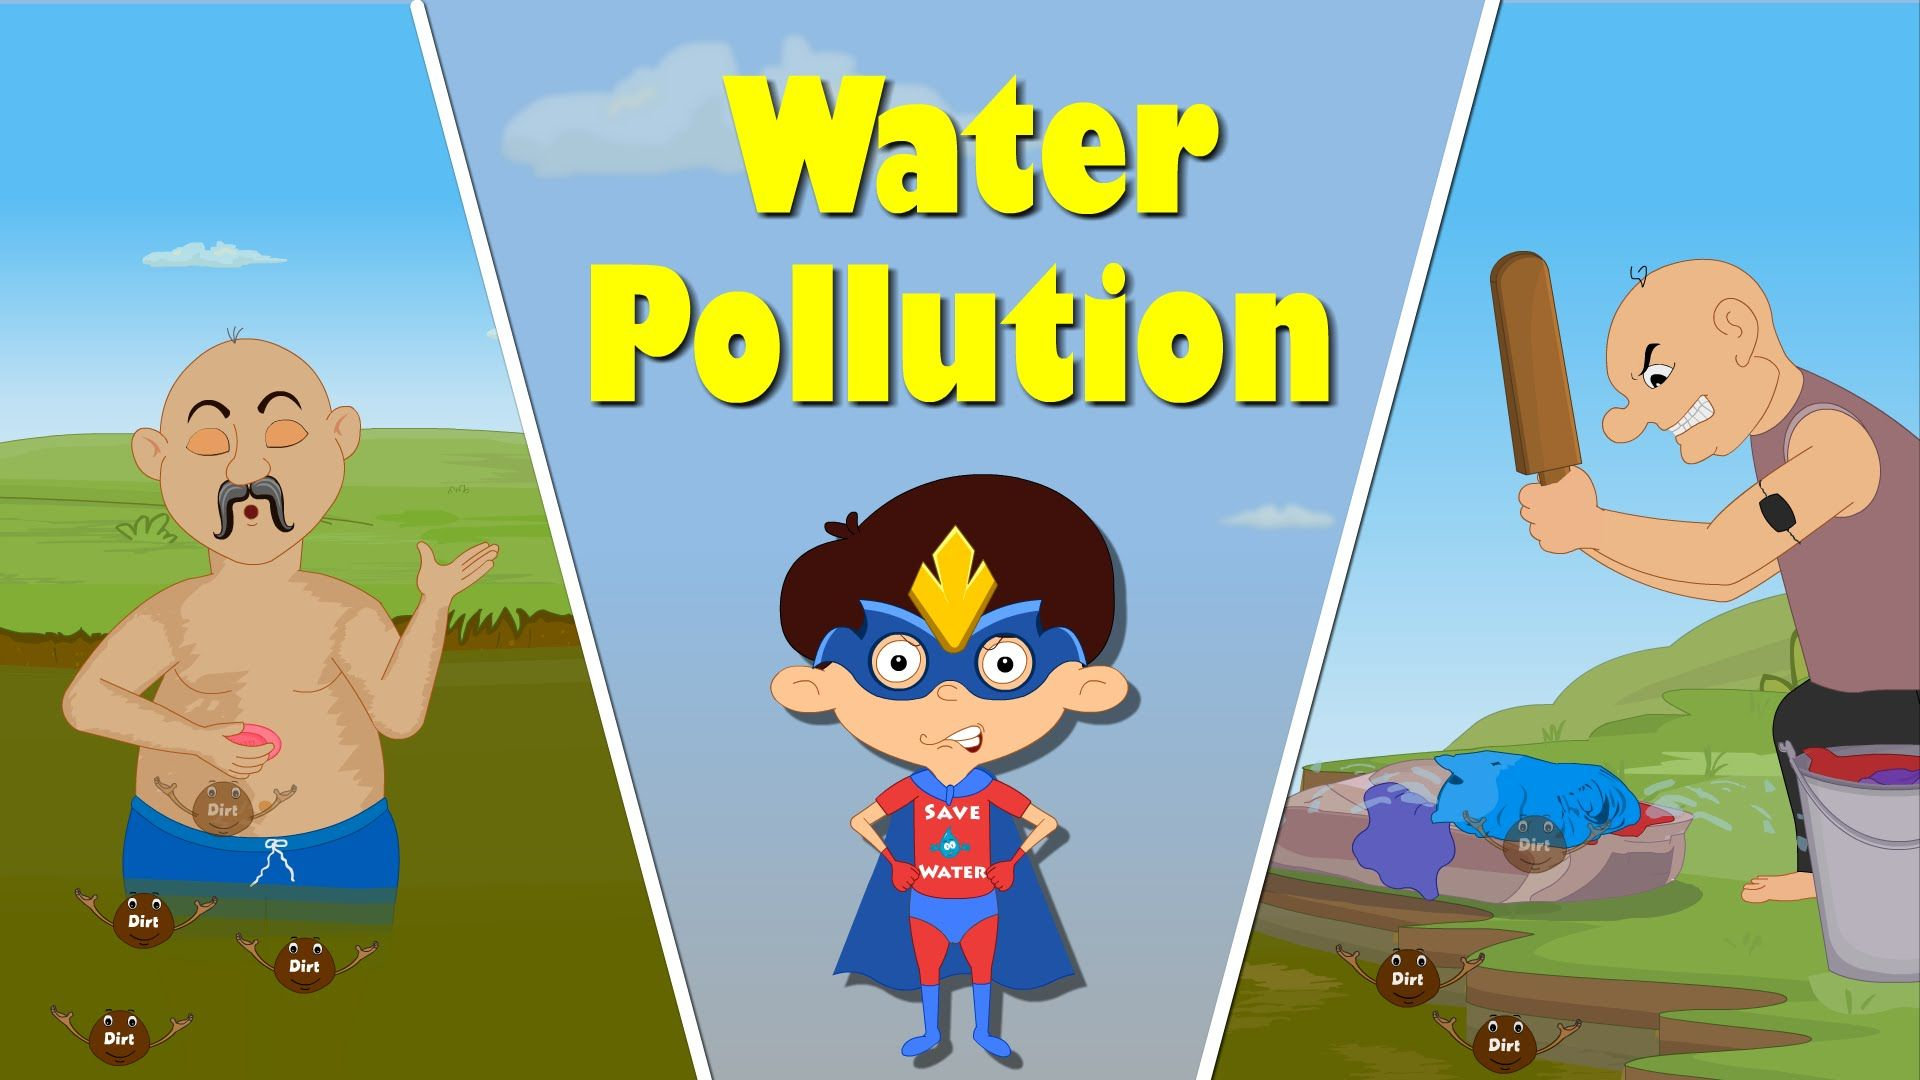 Great Short Clip 3 Min For Introducing Water Pollution